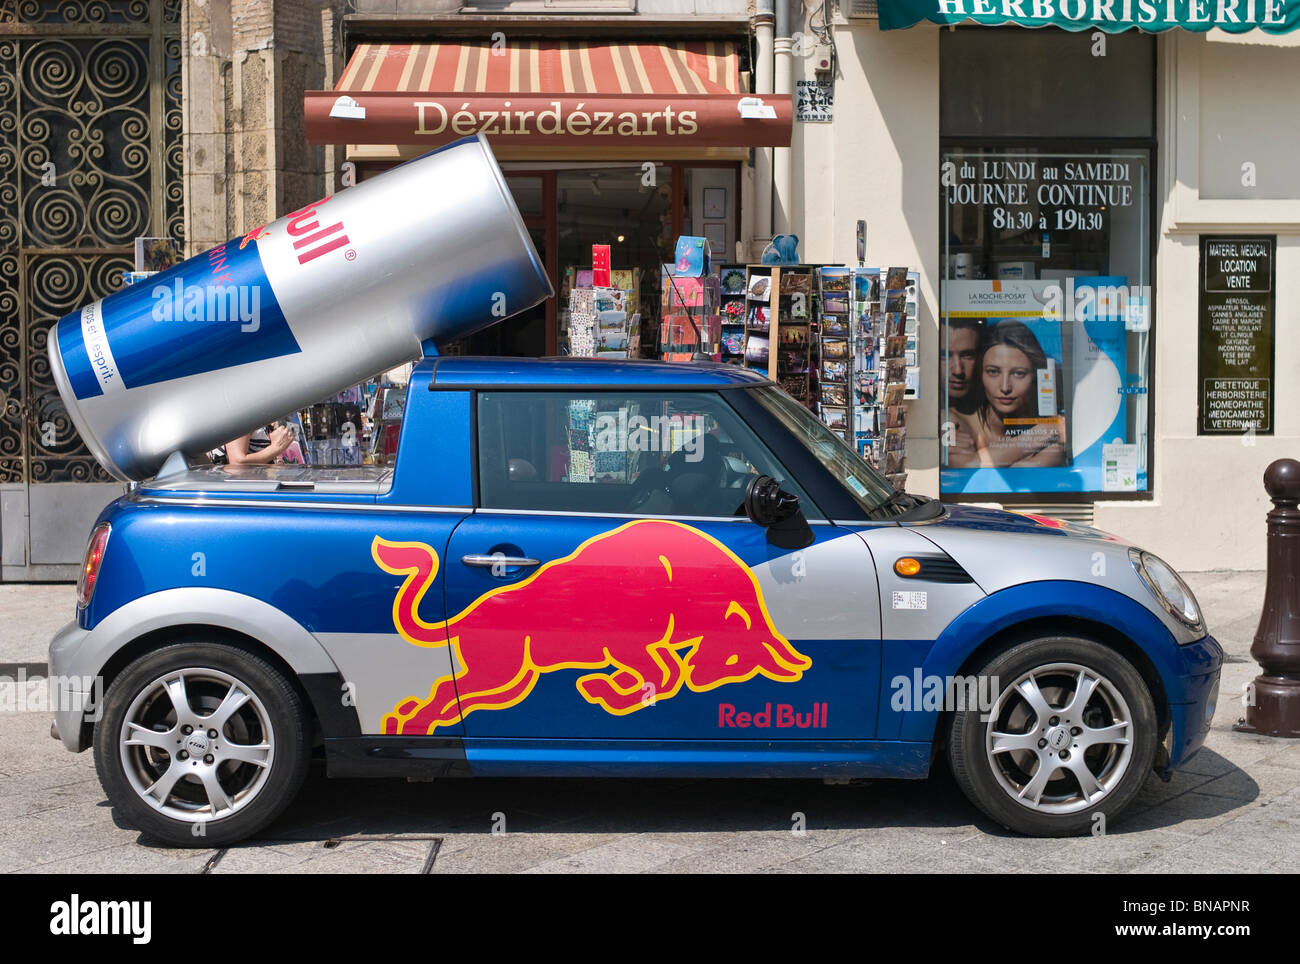 red bull promotions car nice france stock photo 30355523 alamy. Black Bedroom Furniture Sets. Home Design Ideas